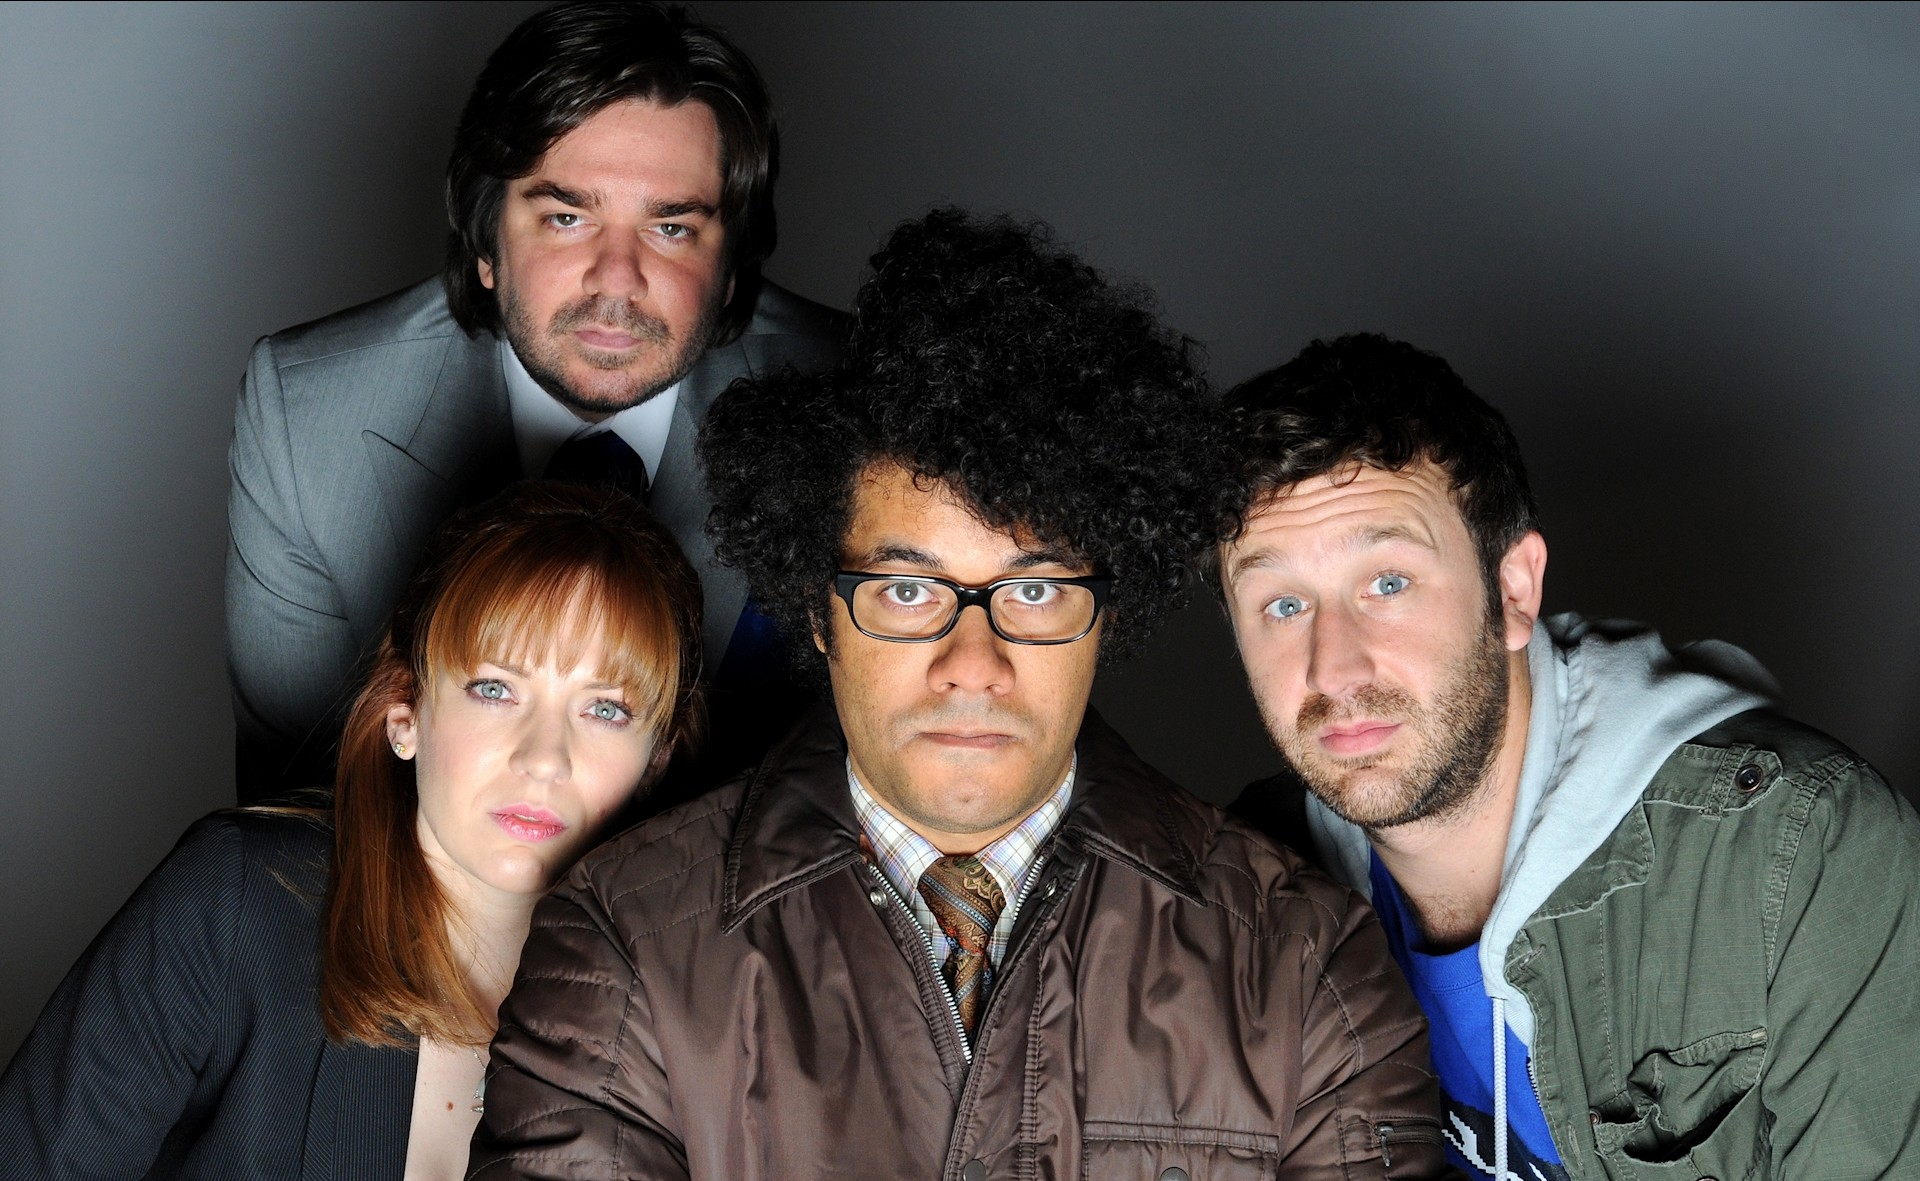 IT Crowd: Fans positive about finale but disappointed by end of an era